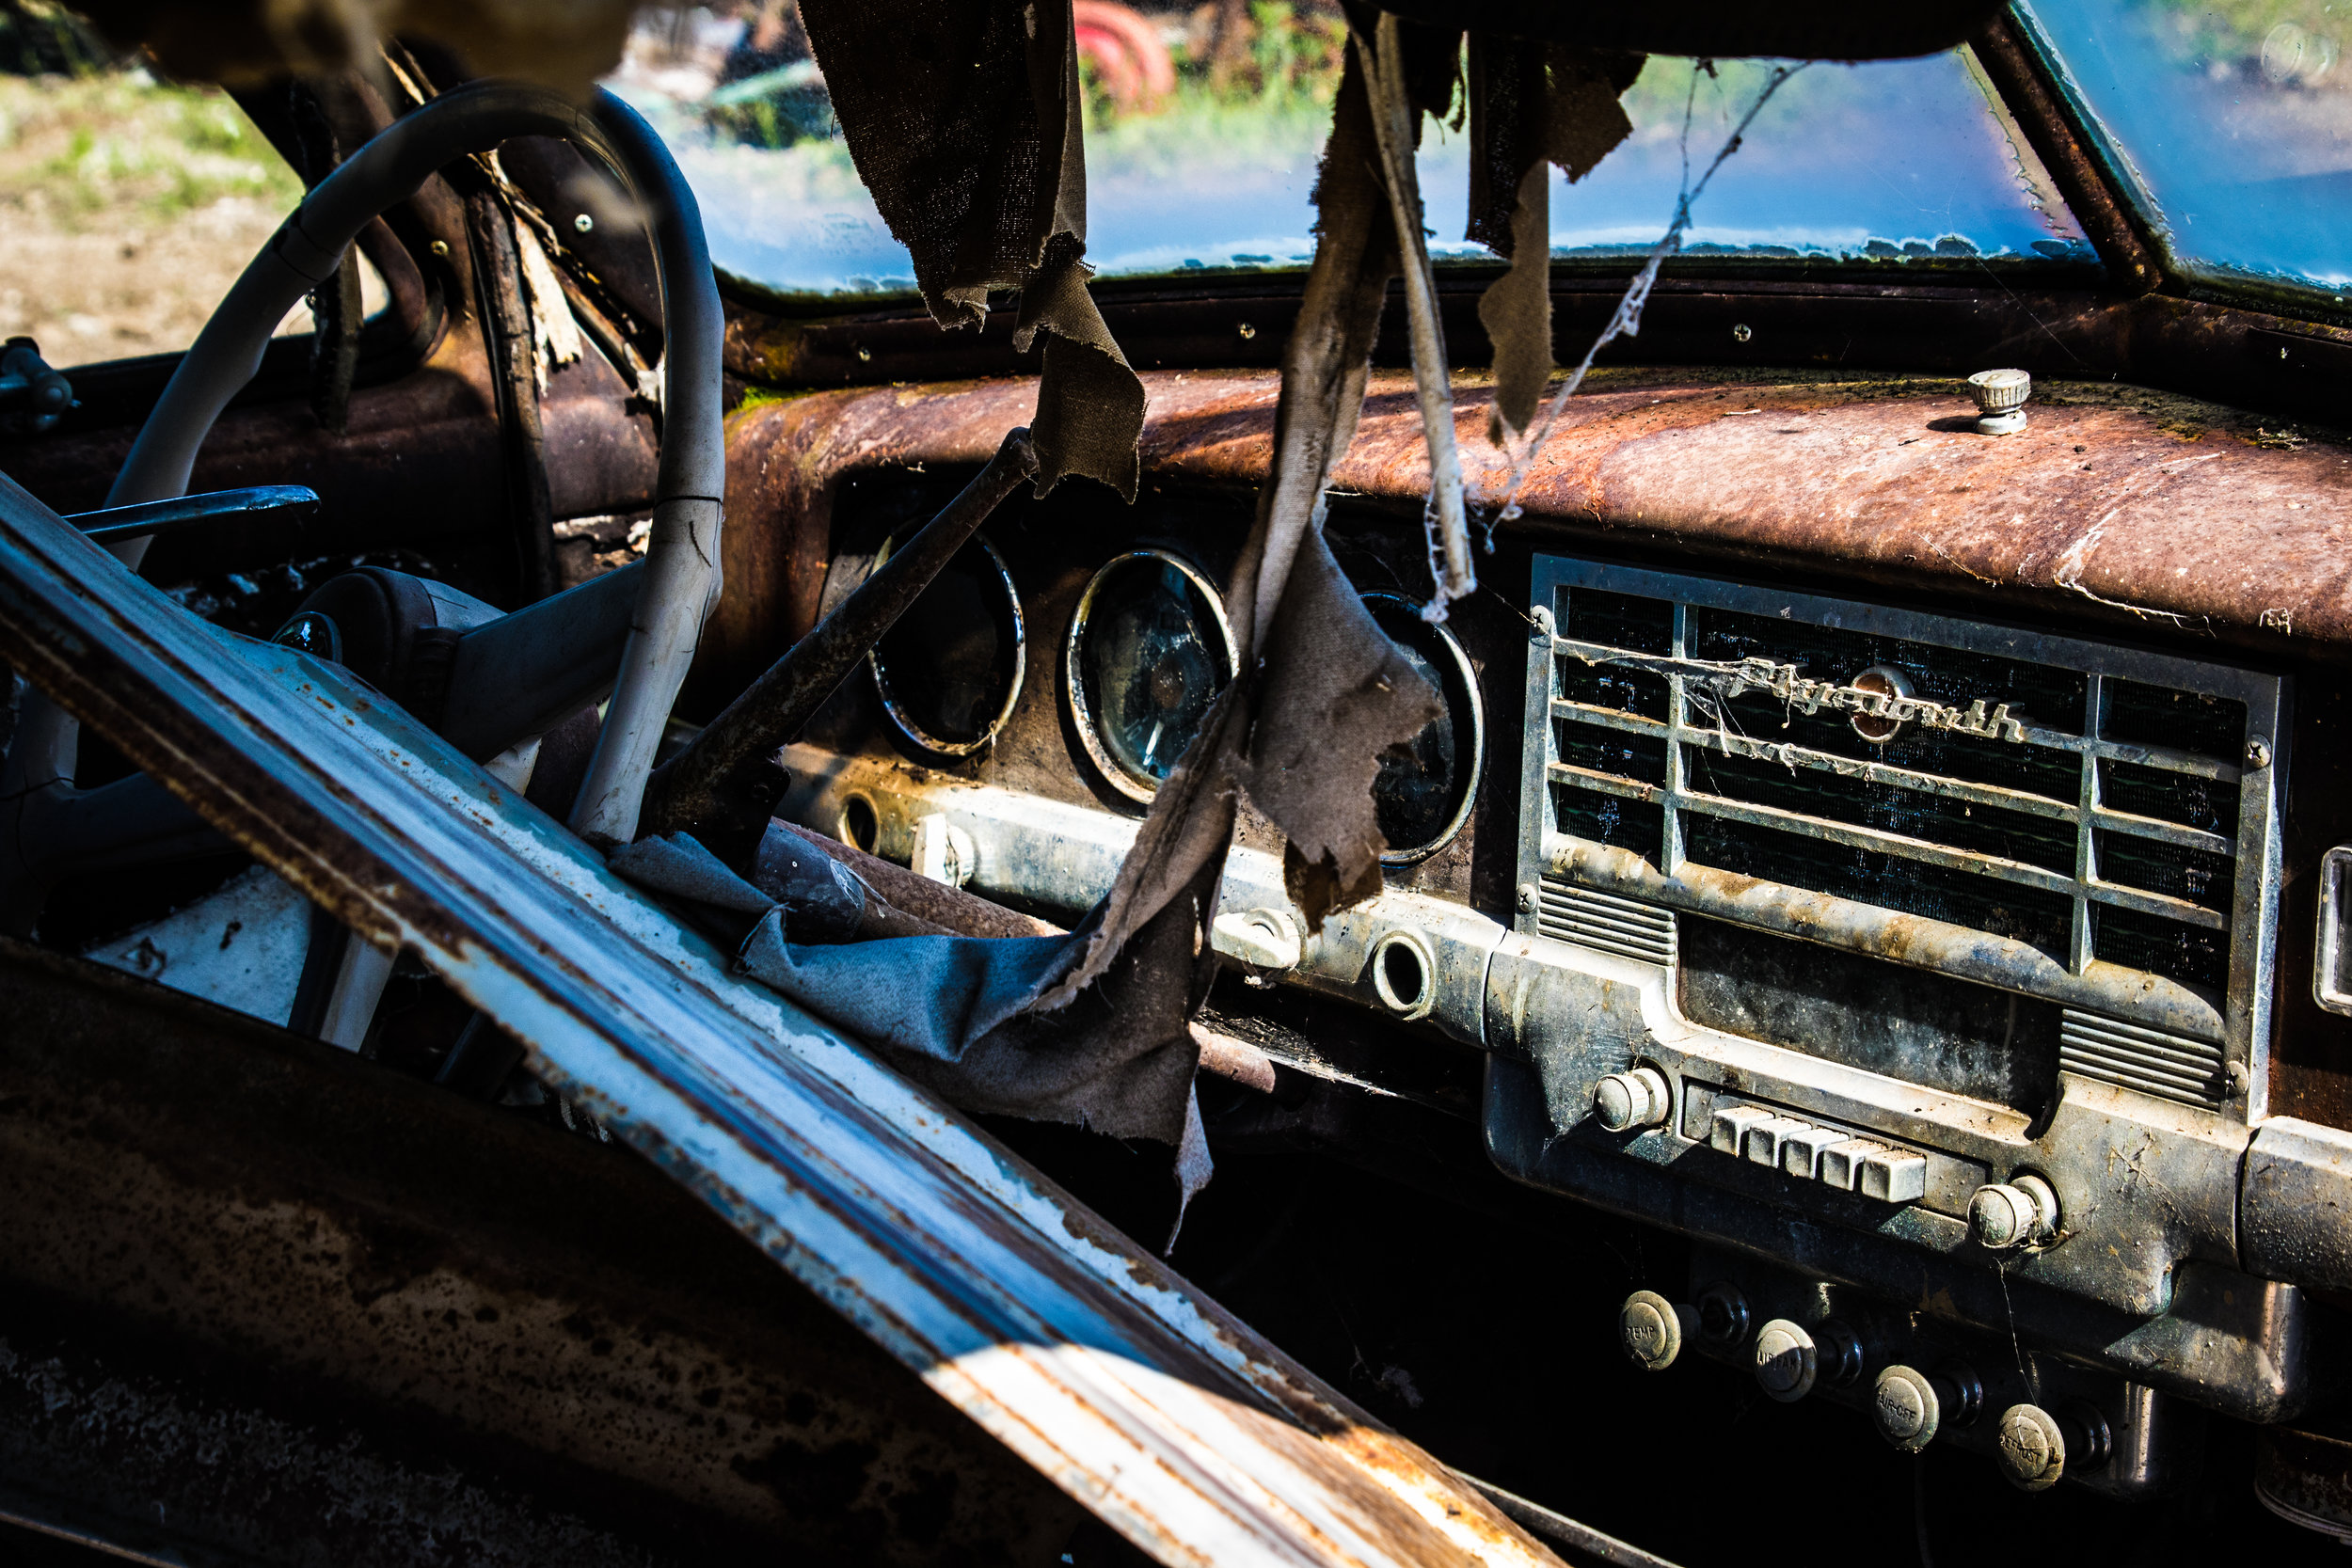 The signs on the dashboard say: rusty & worn out!